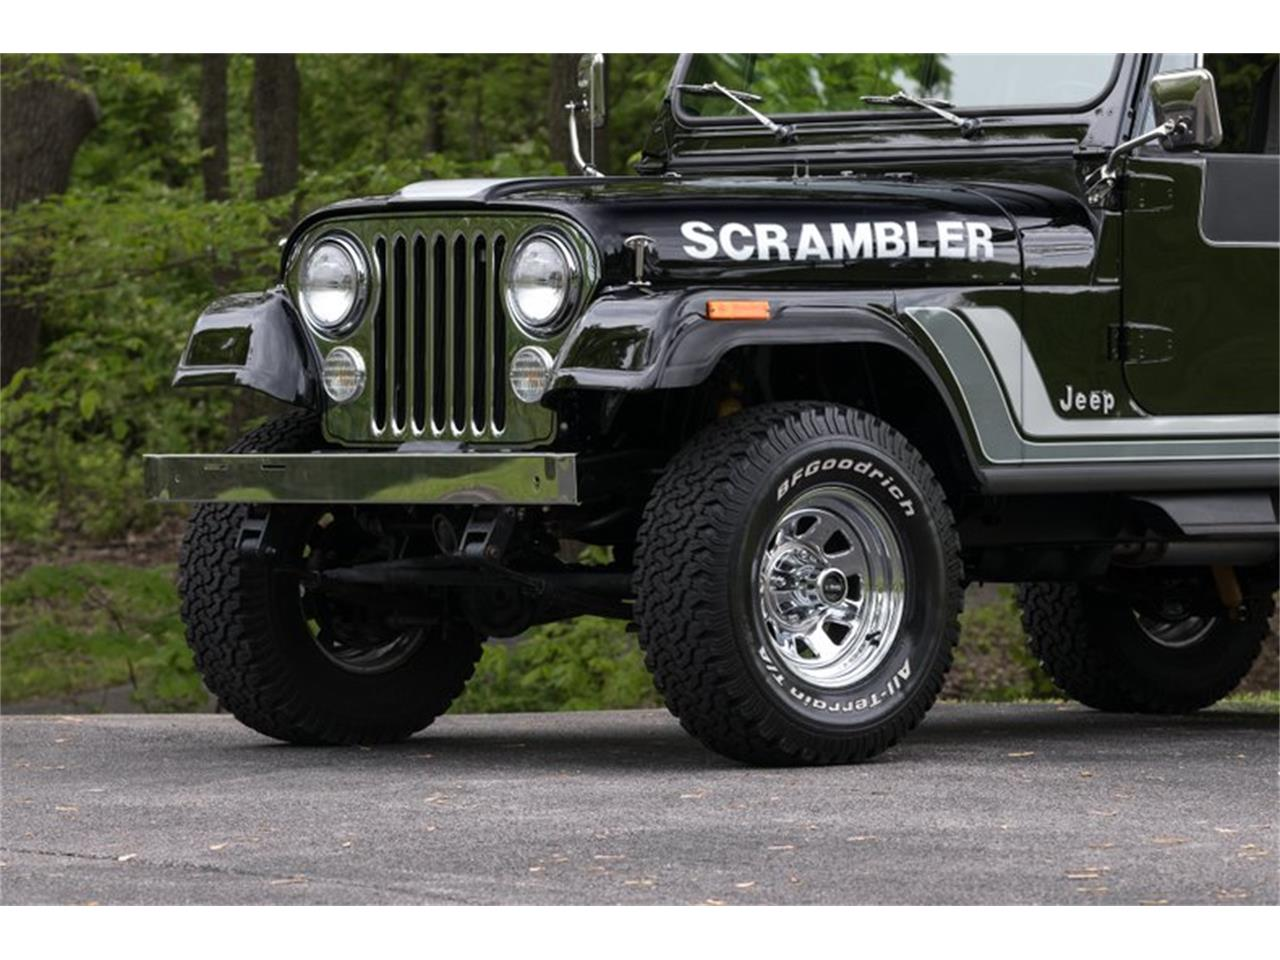 Large Picture of 1982 CJ8 Scrambler located in Missouri Offered by Fast Lane Classic Cars Inc. - Q11Z